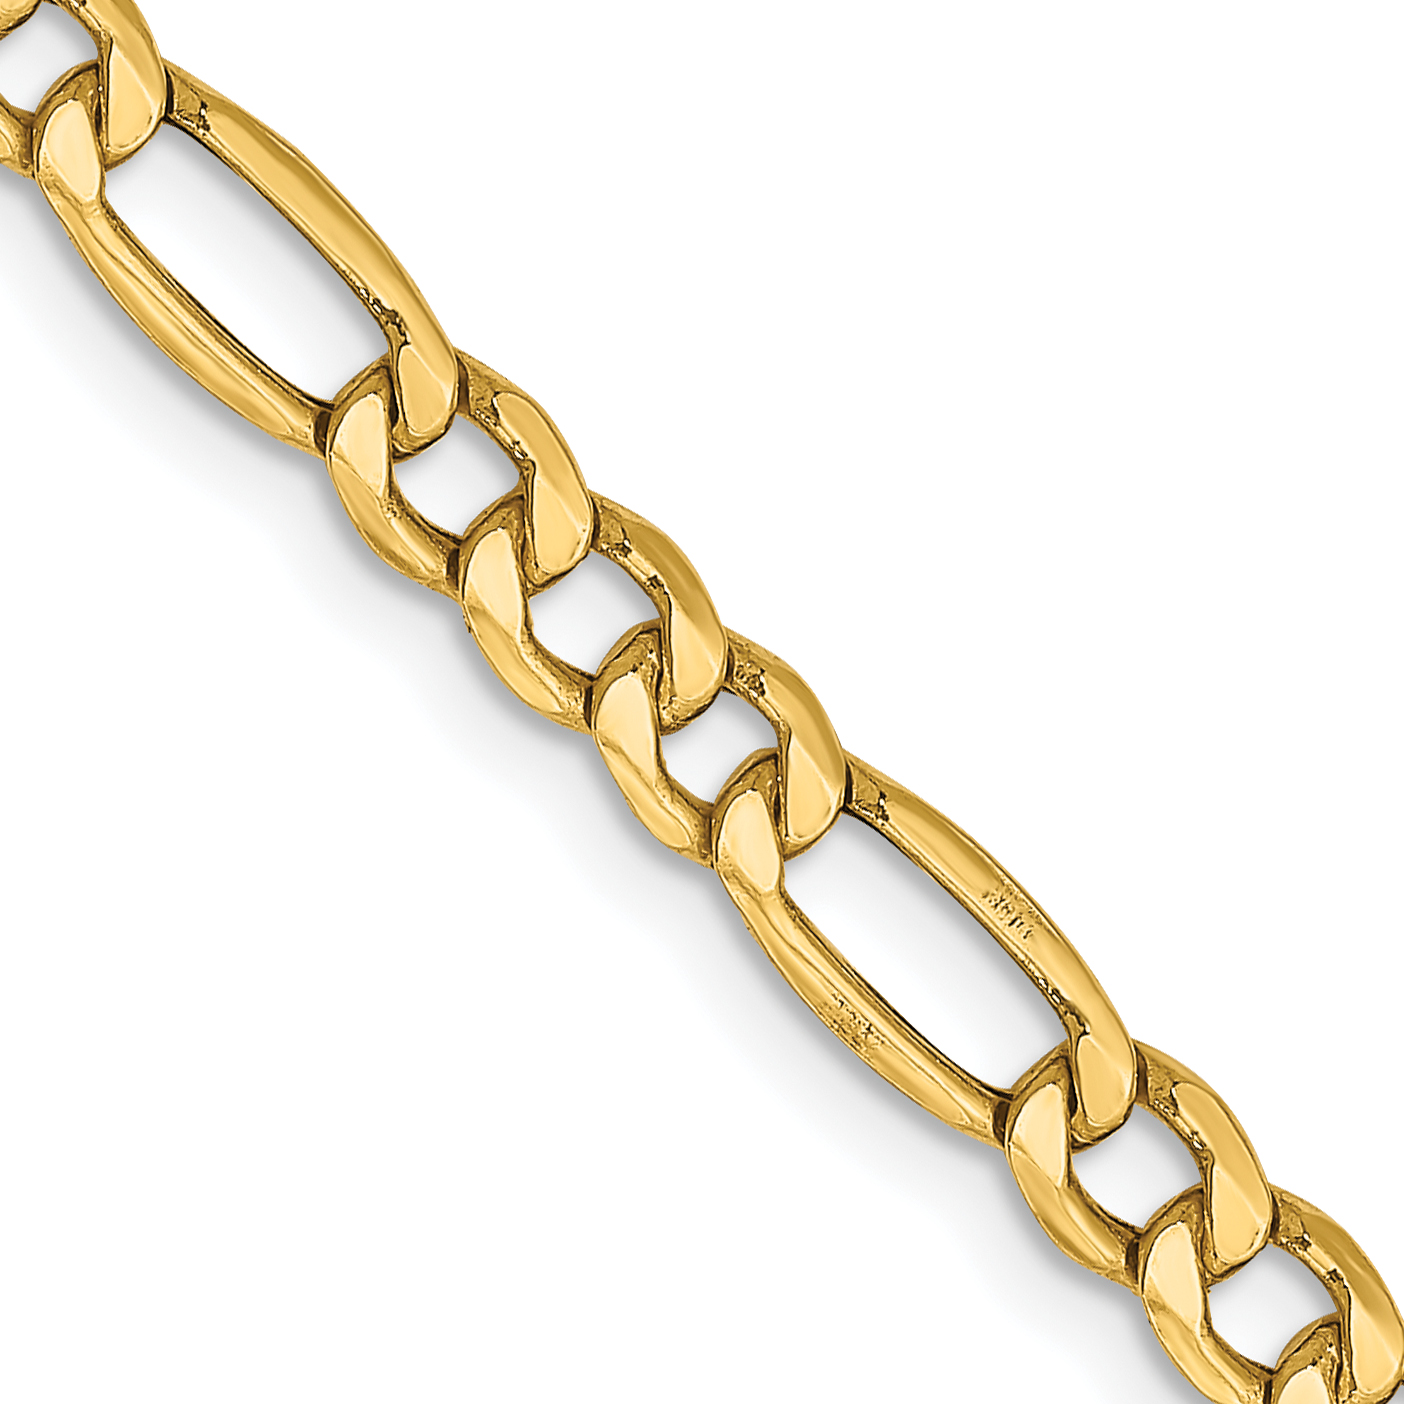 10k 4.75mmSemi-Solid Figaro Chain. Weight: 5.55,  Length: 22